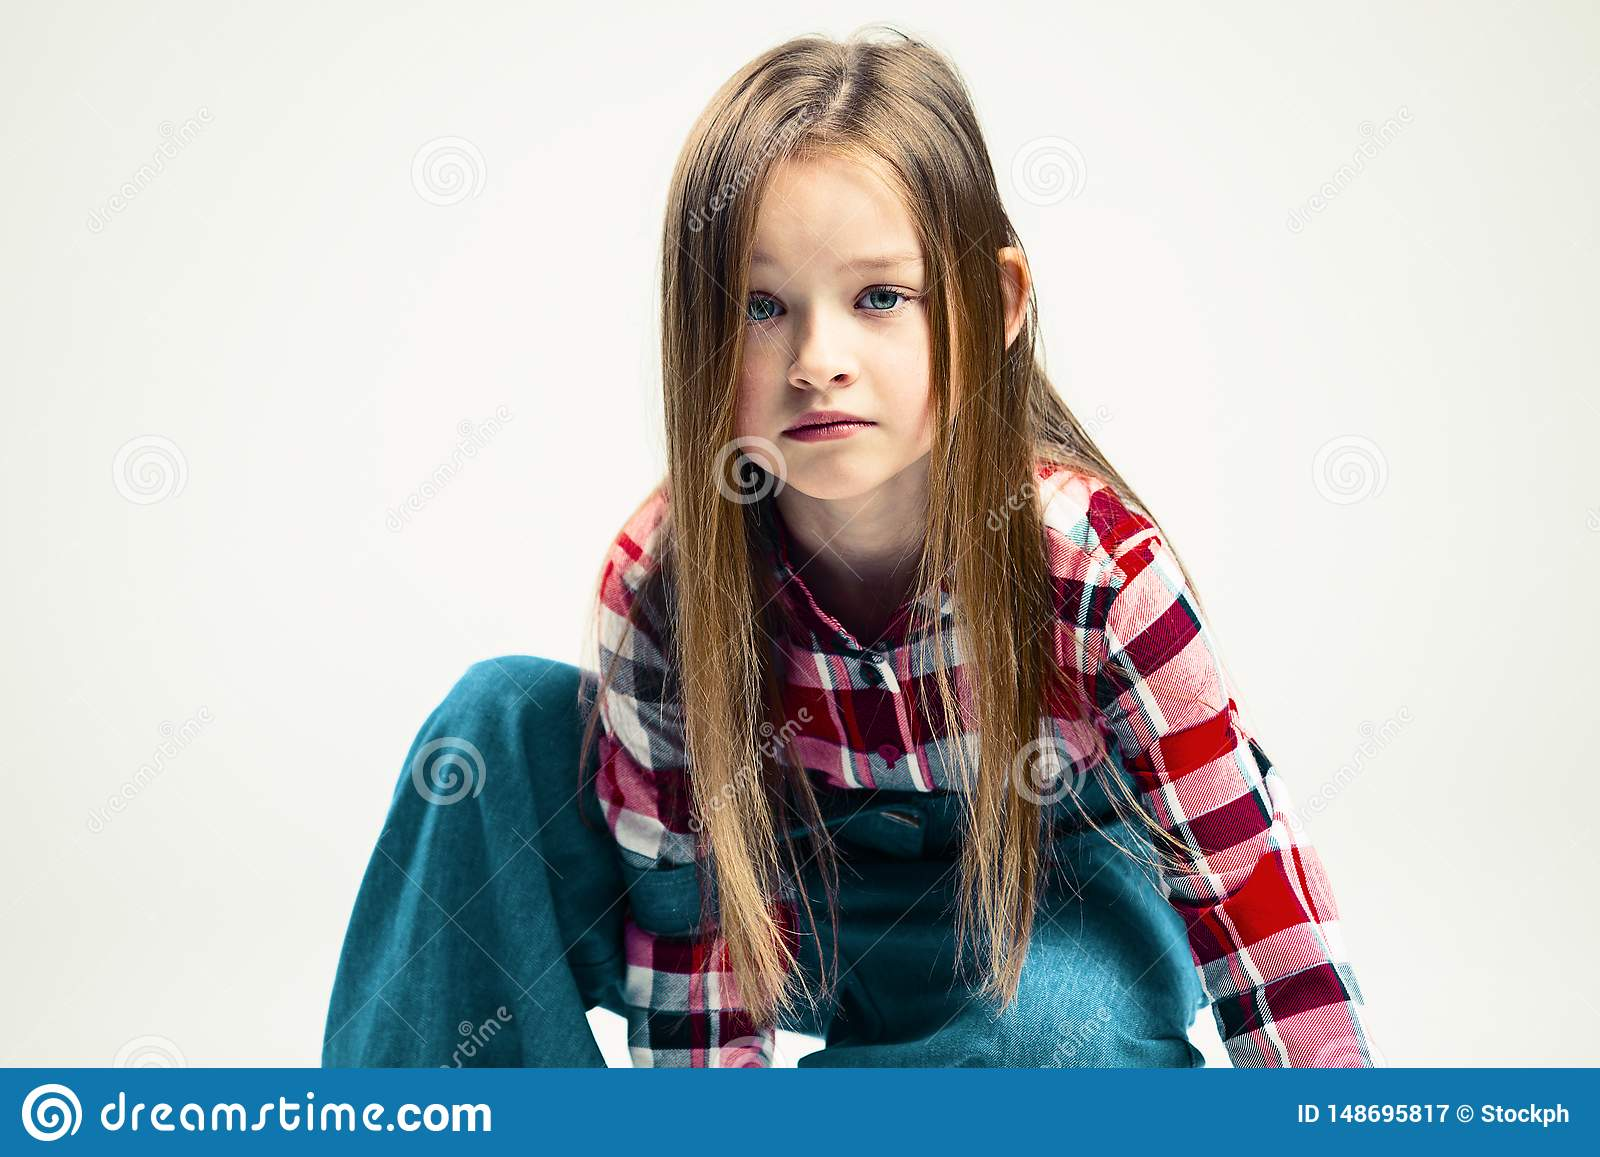 Sad little girl. emotional portrait of a child. fashion studio shooting